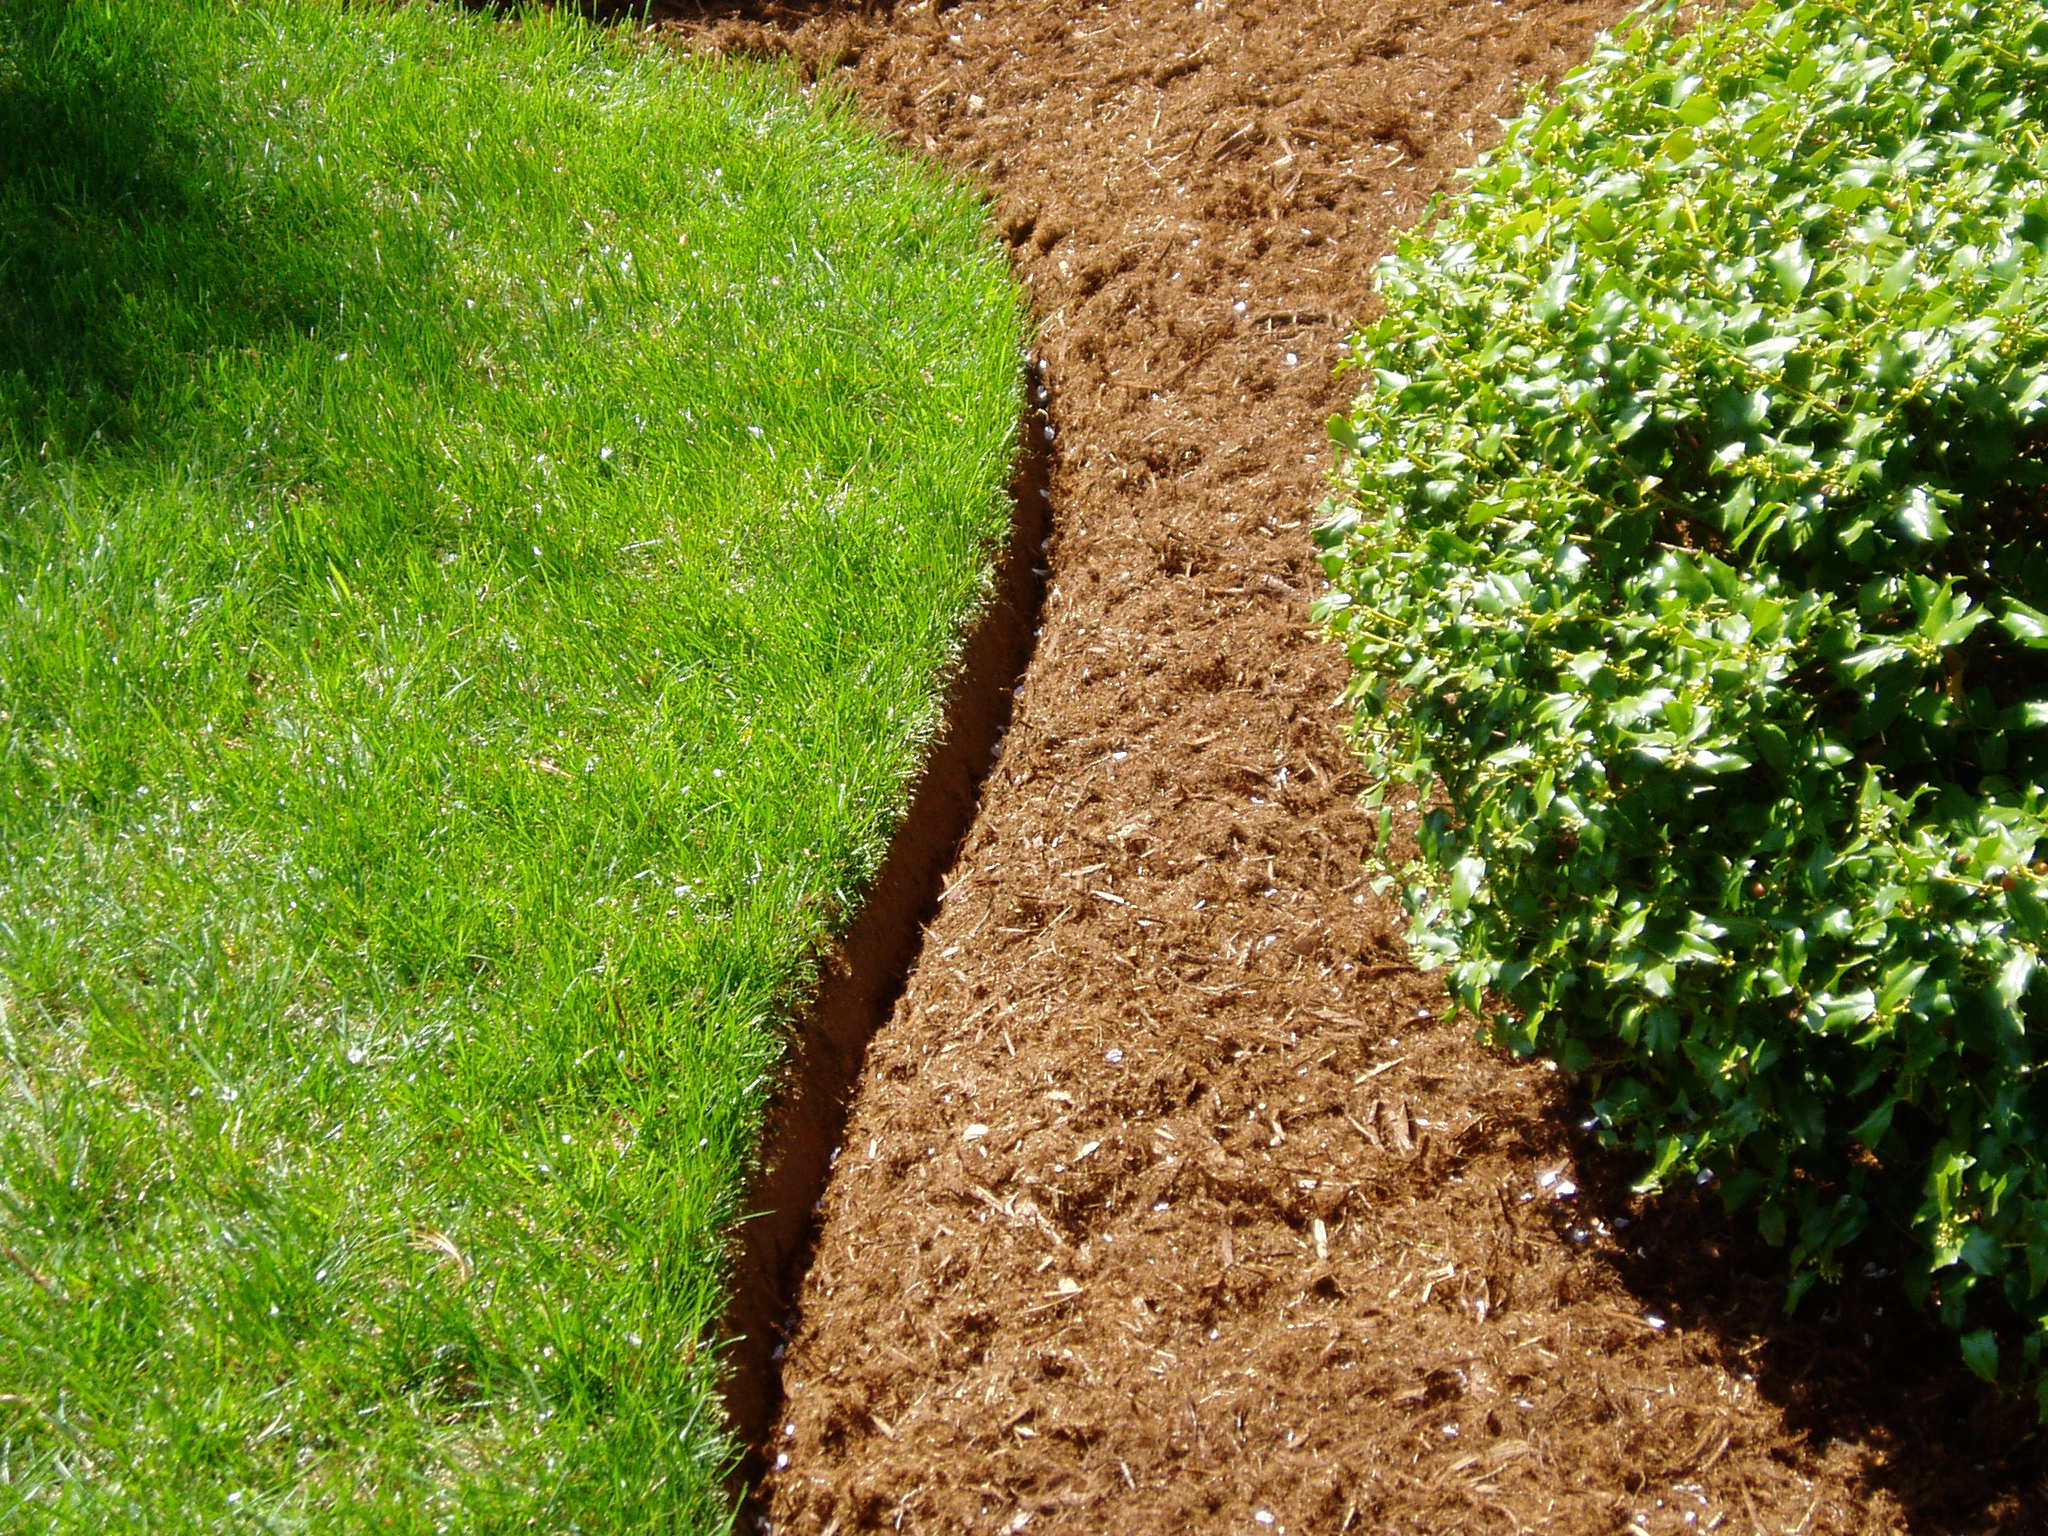 Decor home depot edging landscape edging ideas garden for Flower bed edging ideas